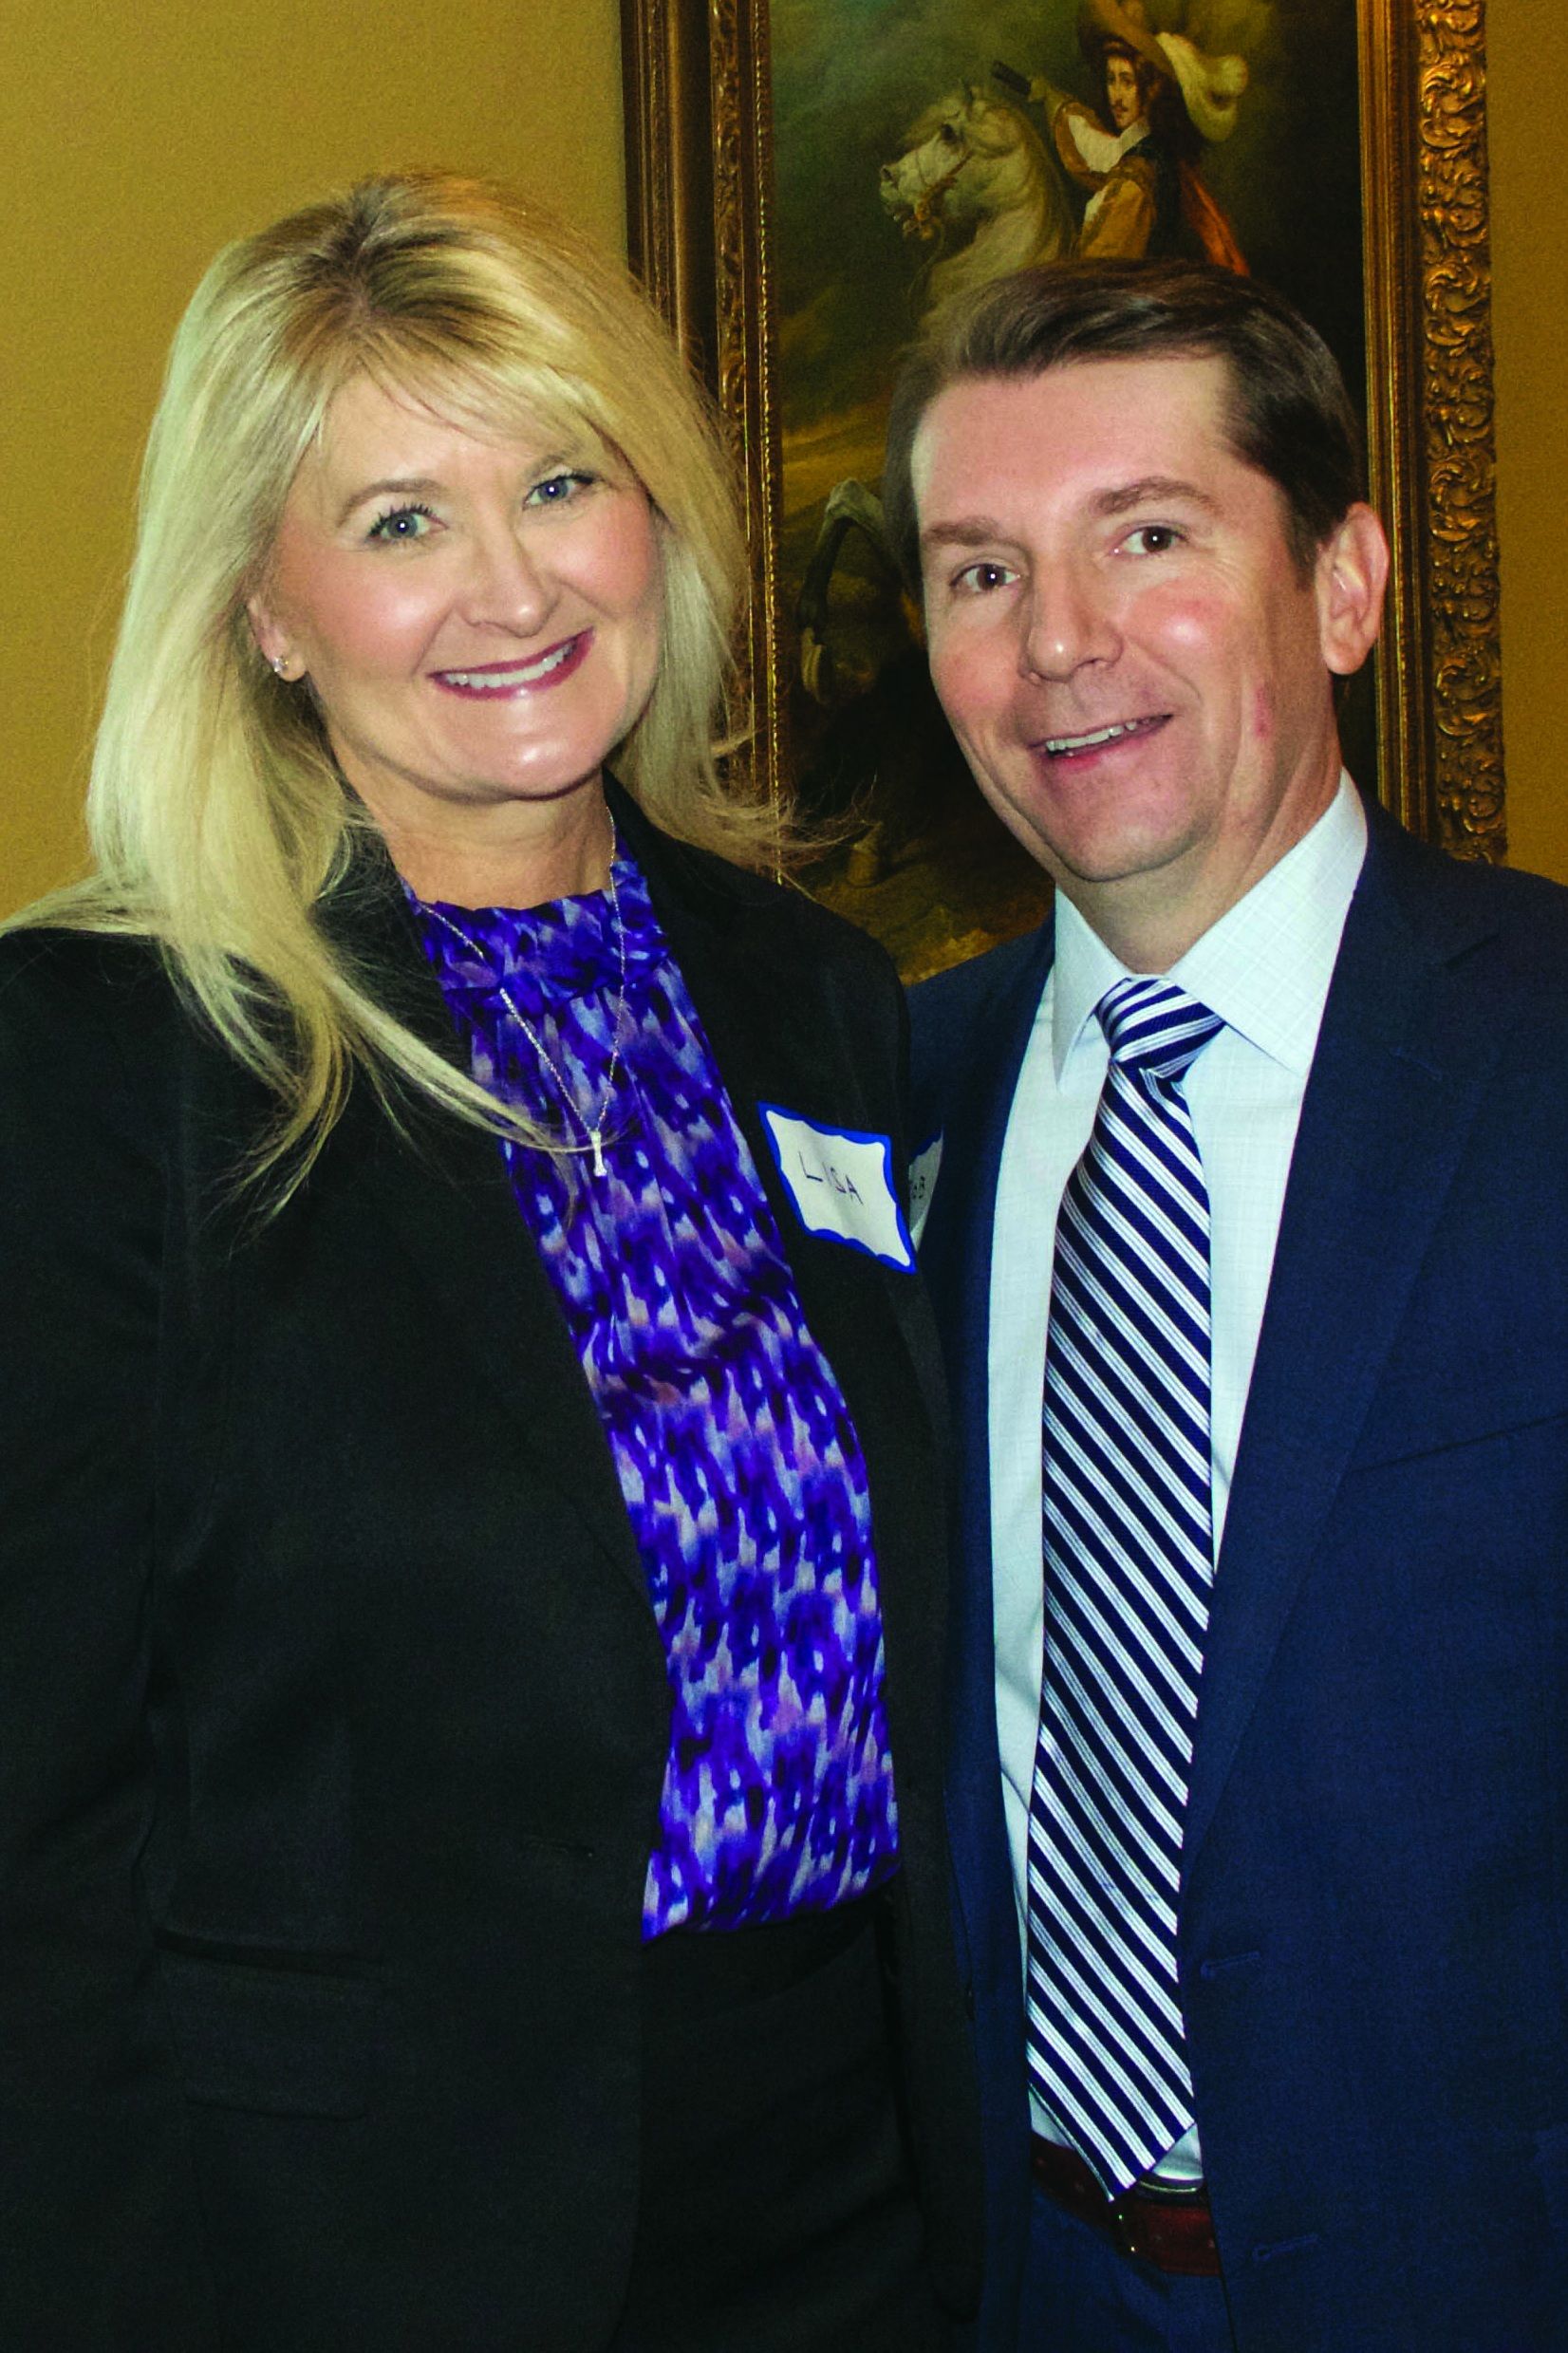 Rob and his wife, Lisa, during a Welcome Reception held in their honor on March 5 after he was named CEO of AR-TX Regional Economic Development Incorporation (AR-TX REDI).